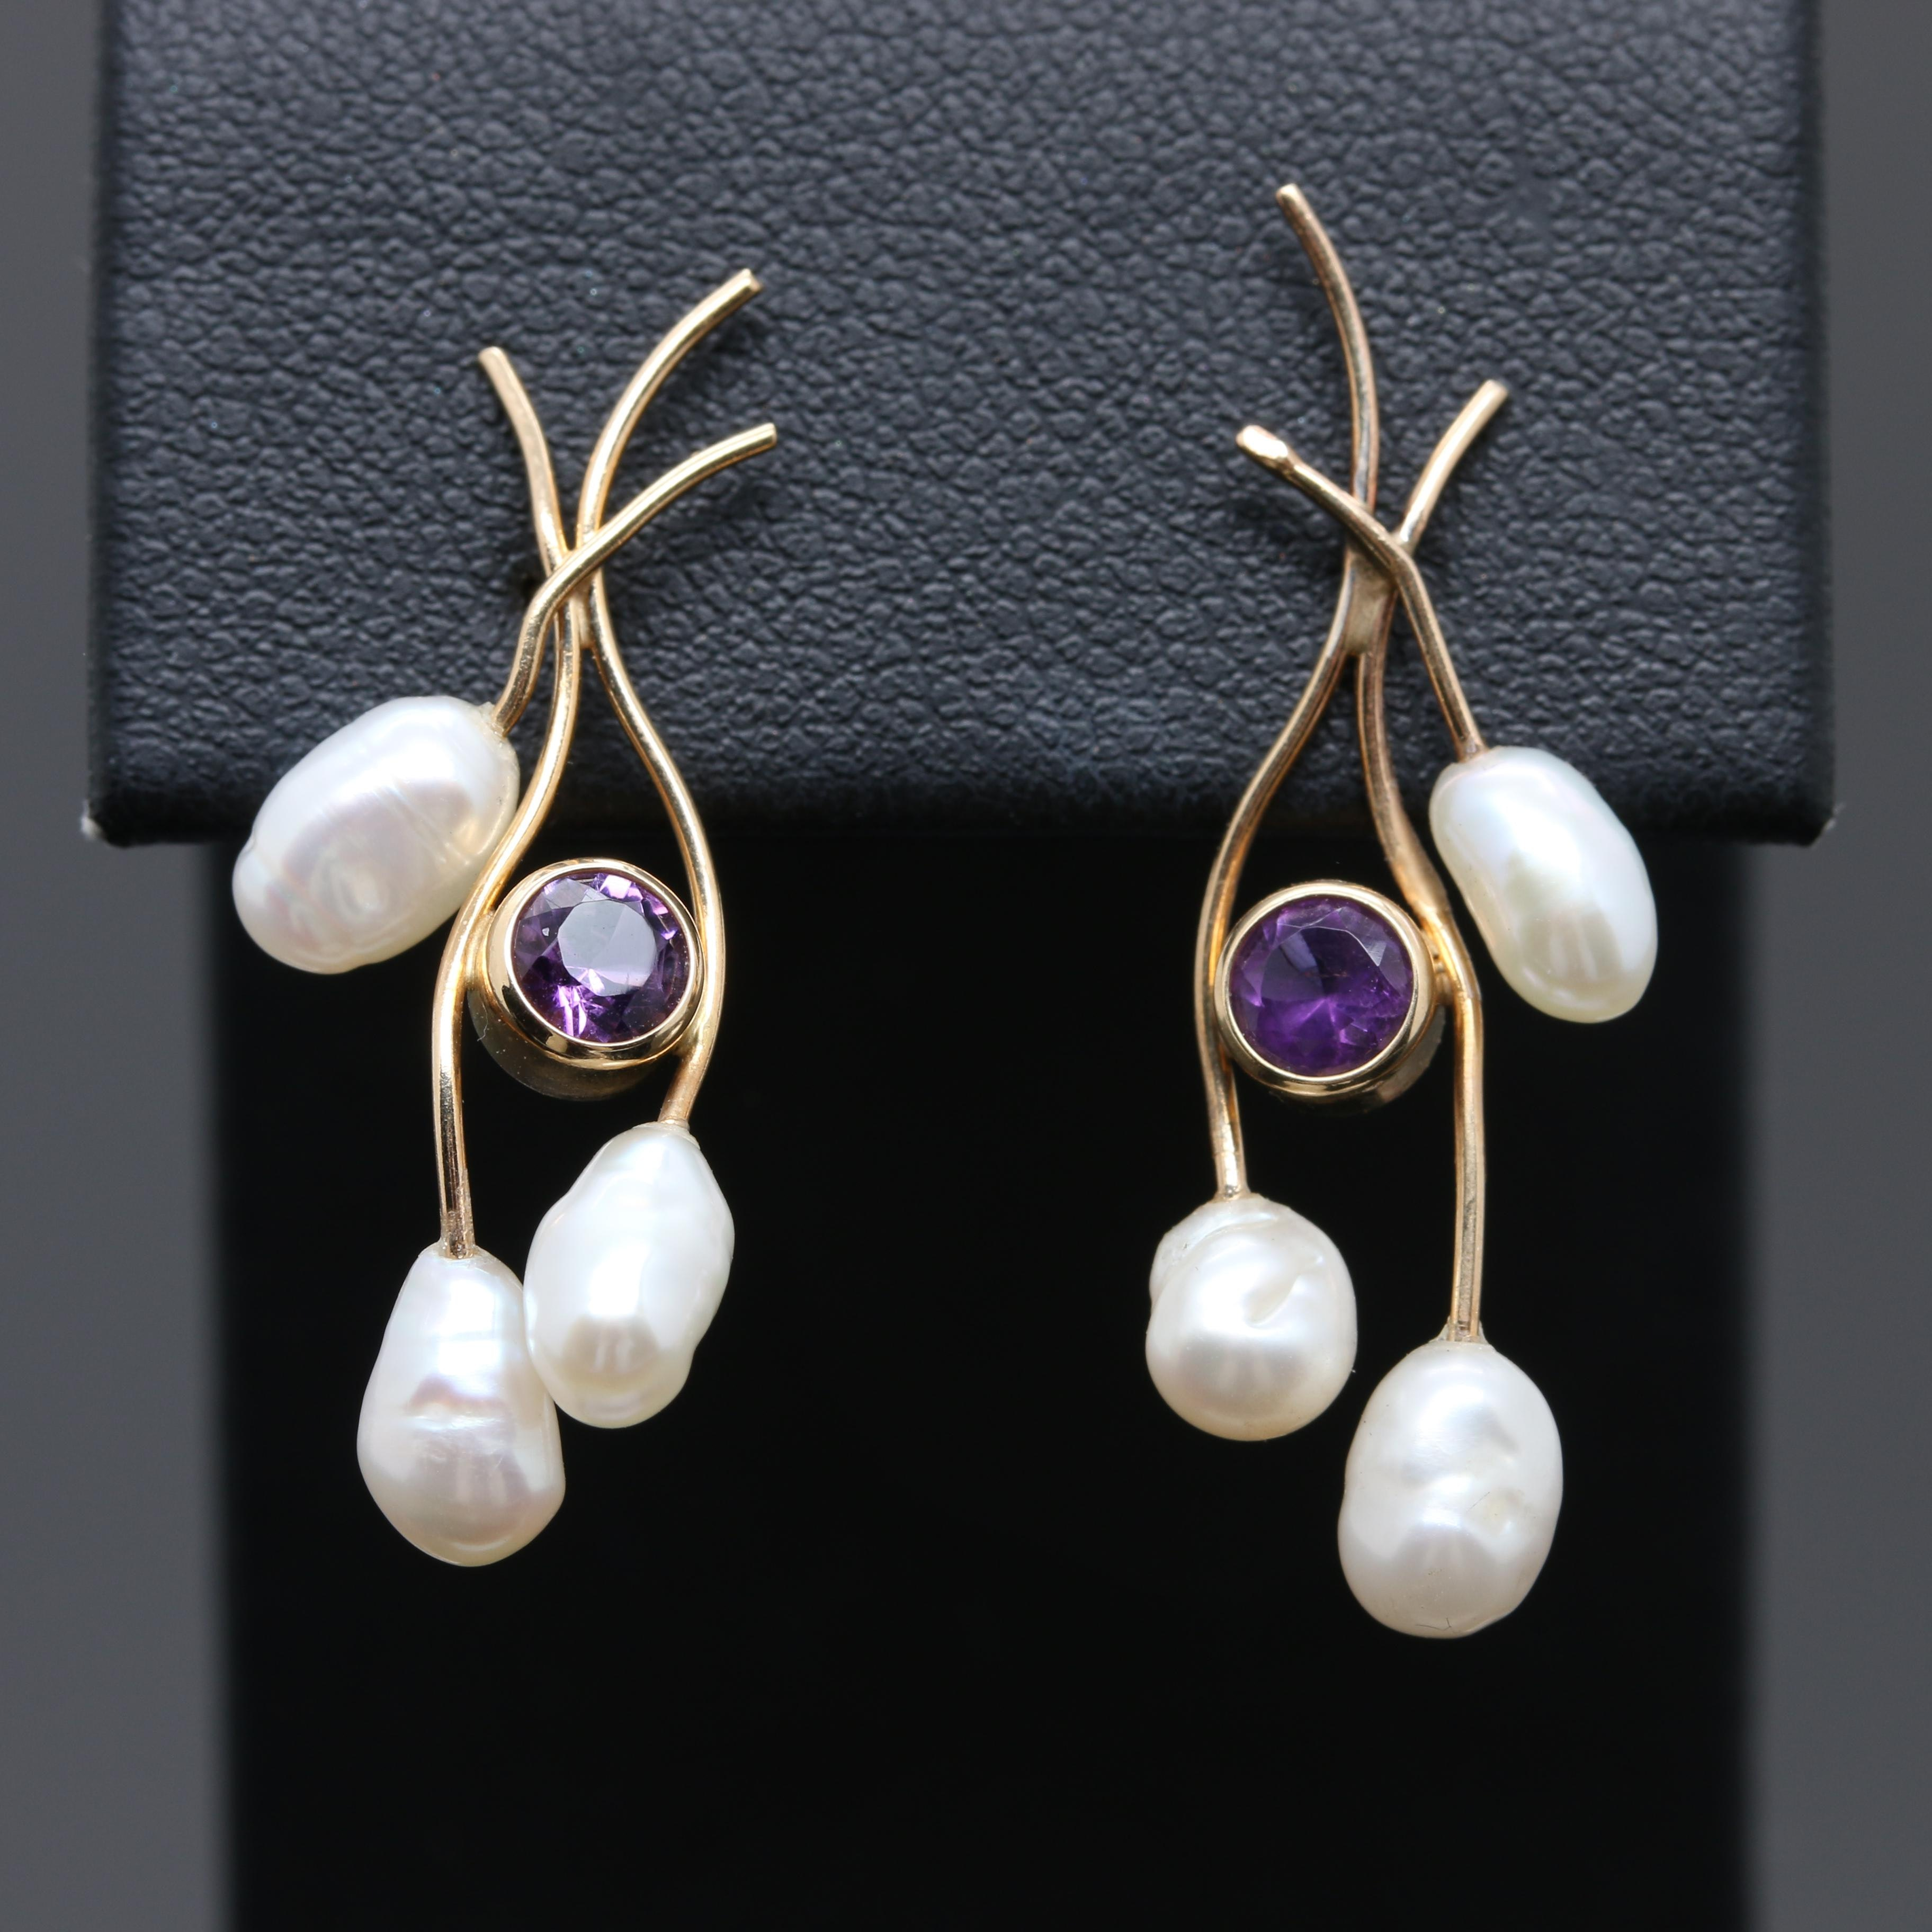 14K Yellow Gold Cultured Freshwater Pearl and Amethyst Earrings